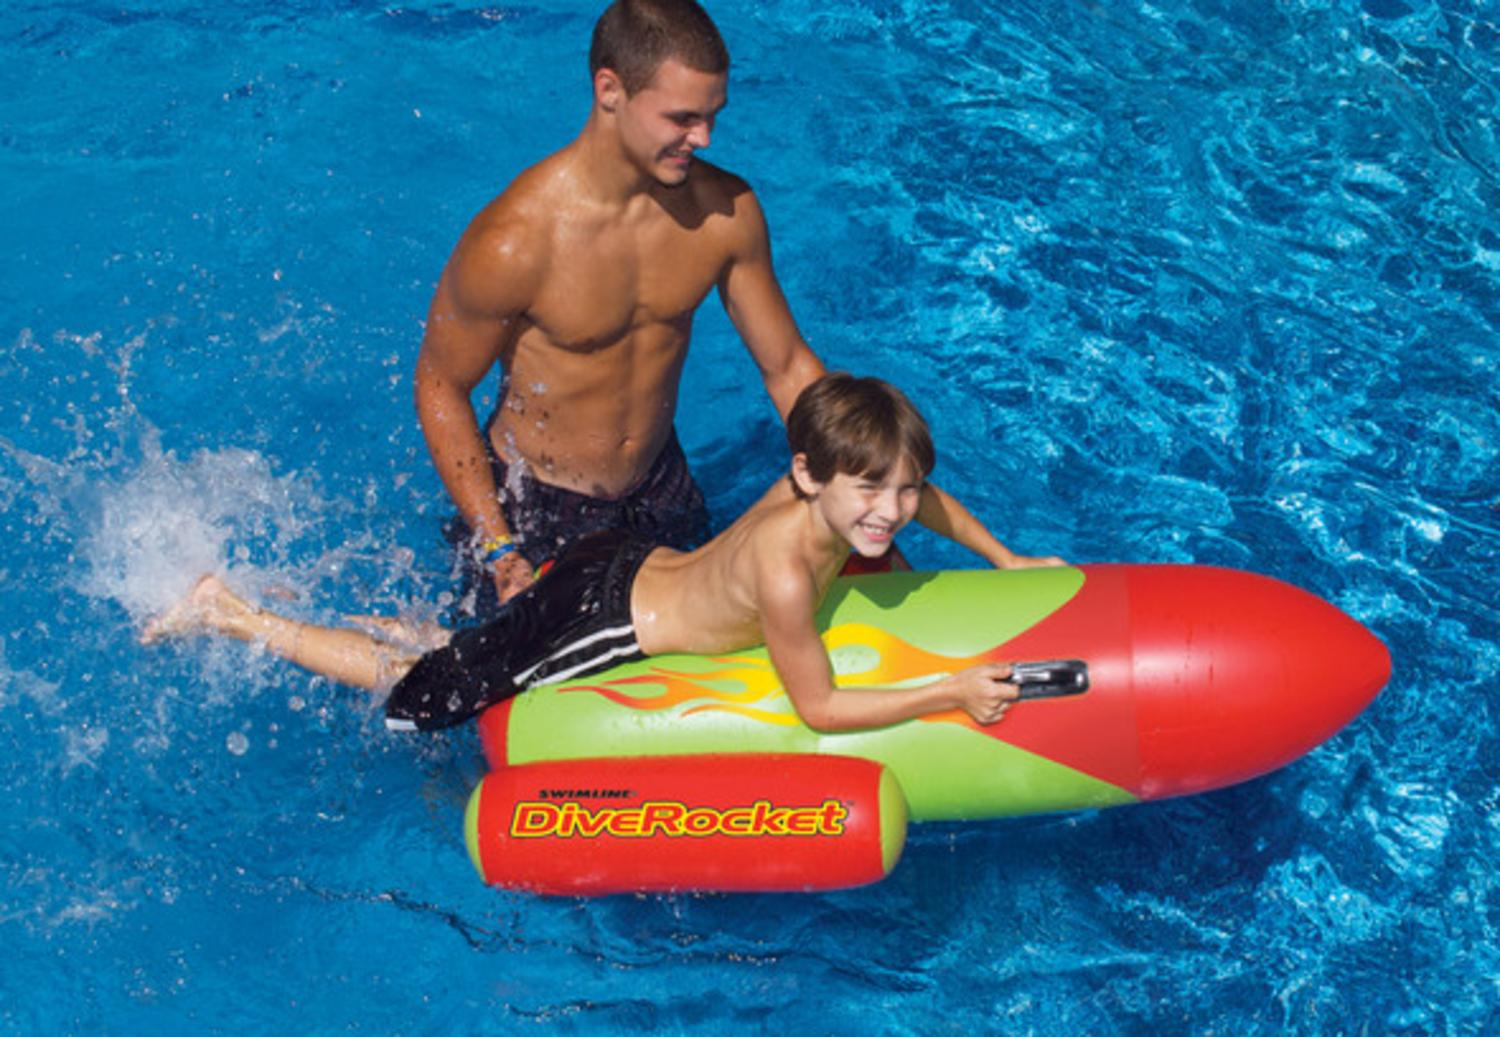 Dive Rocket Inflatable Swimming Pool Aerobic Toy by Swim Central